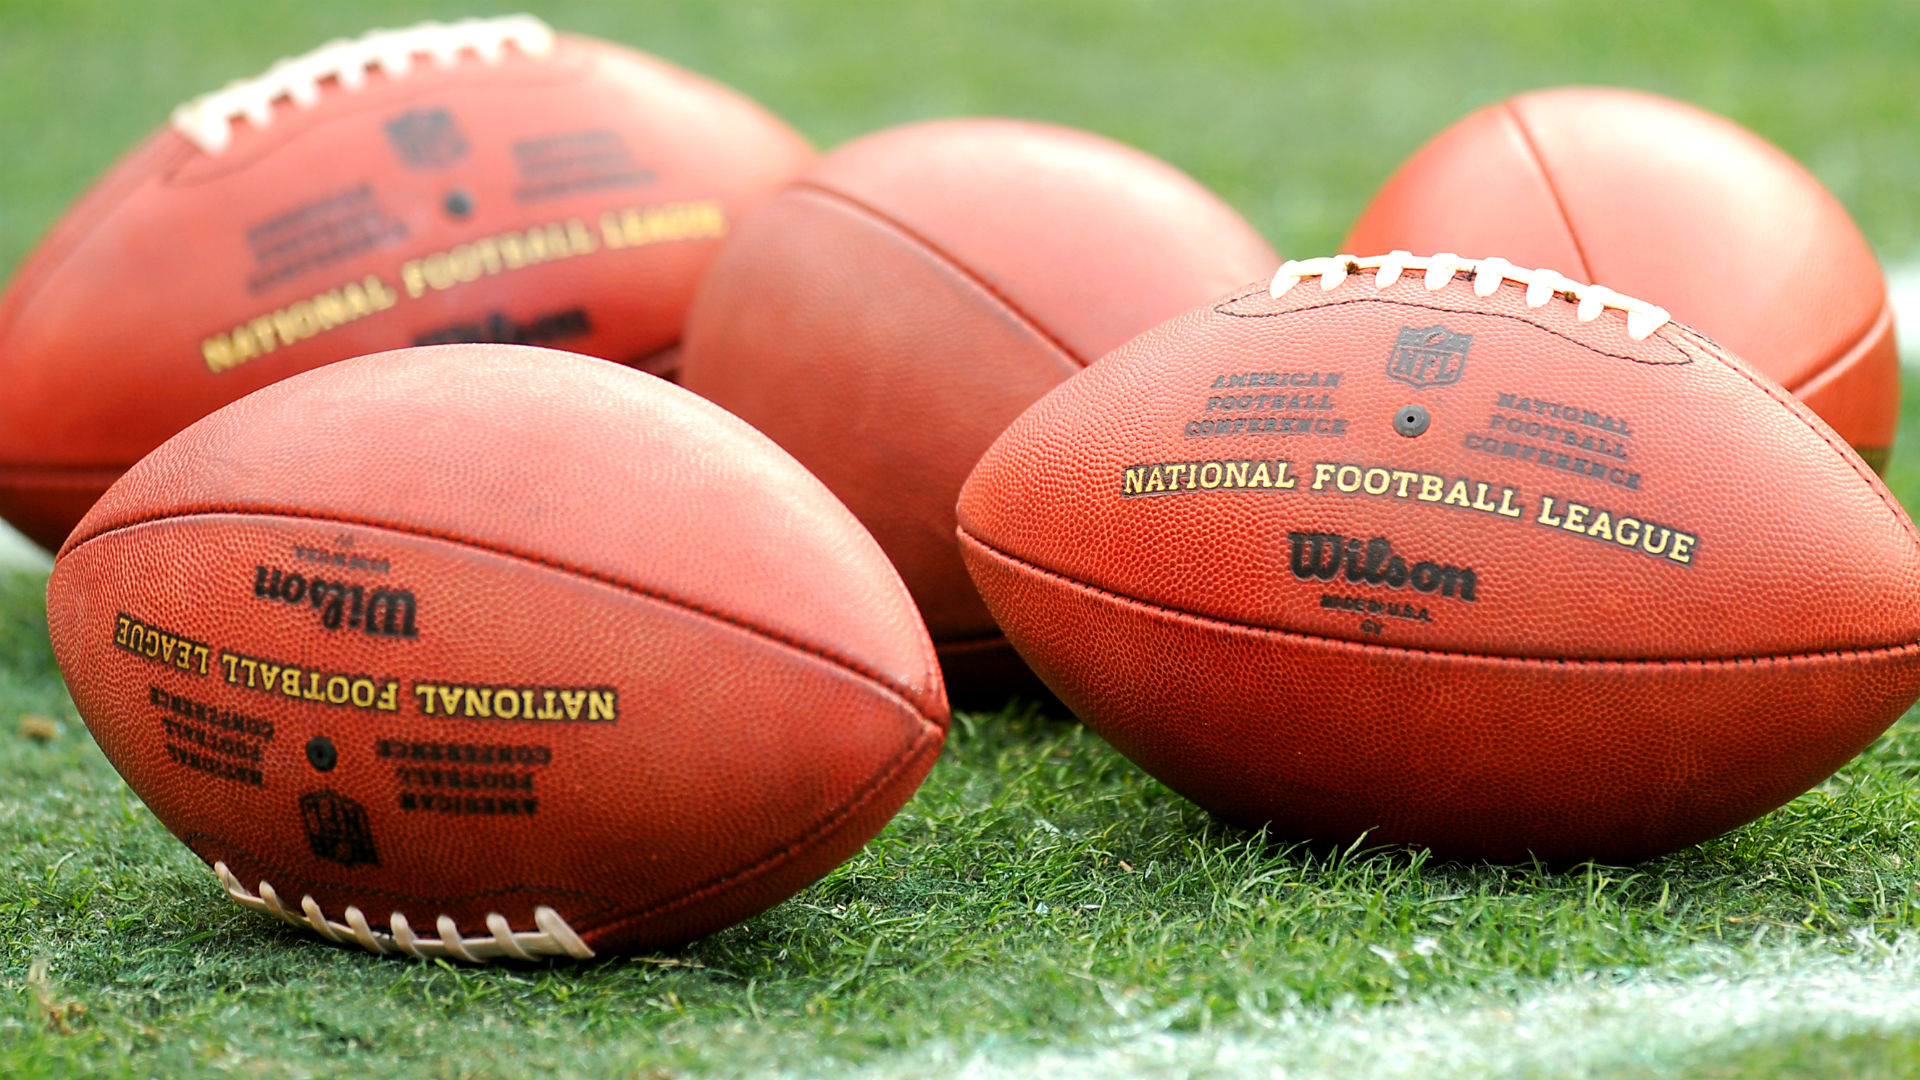 nflfootballs-getty-ftr.jpg